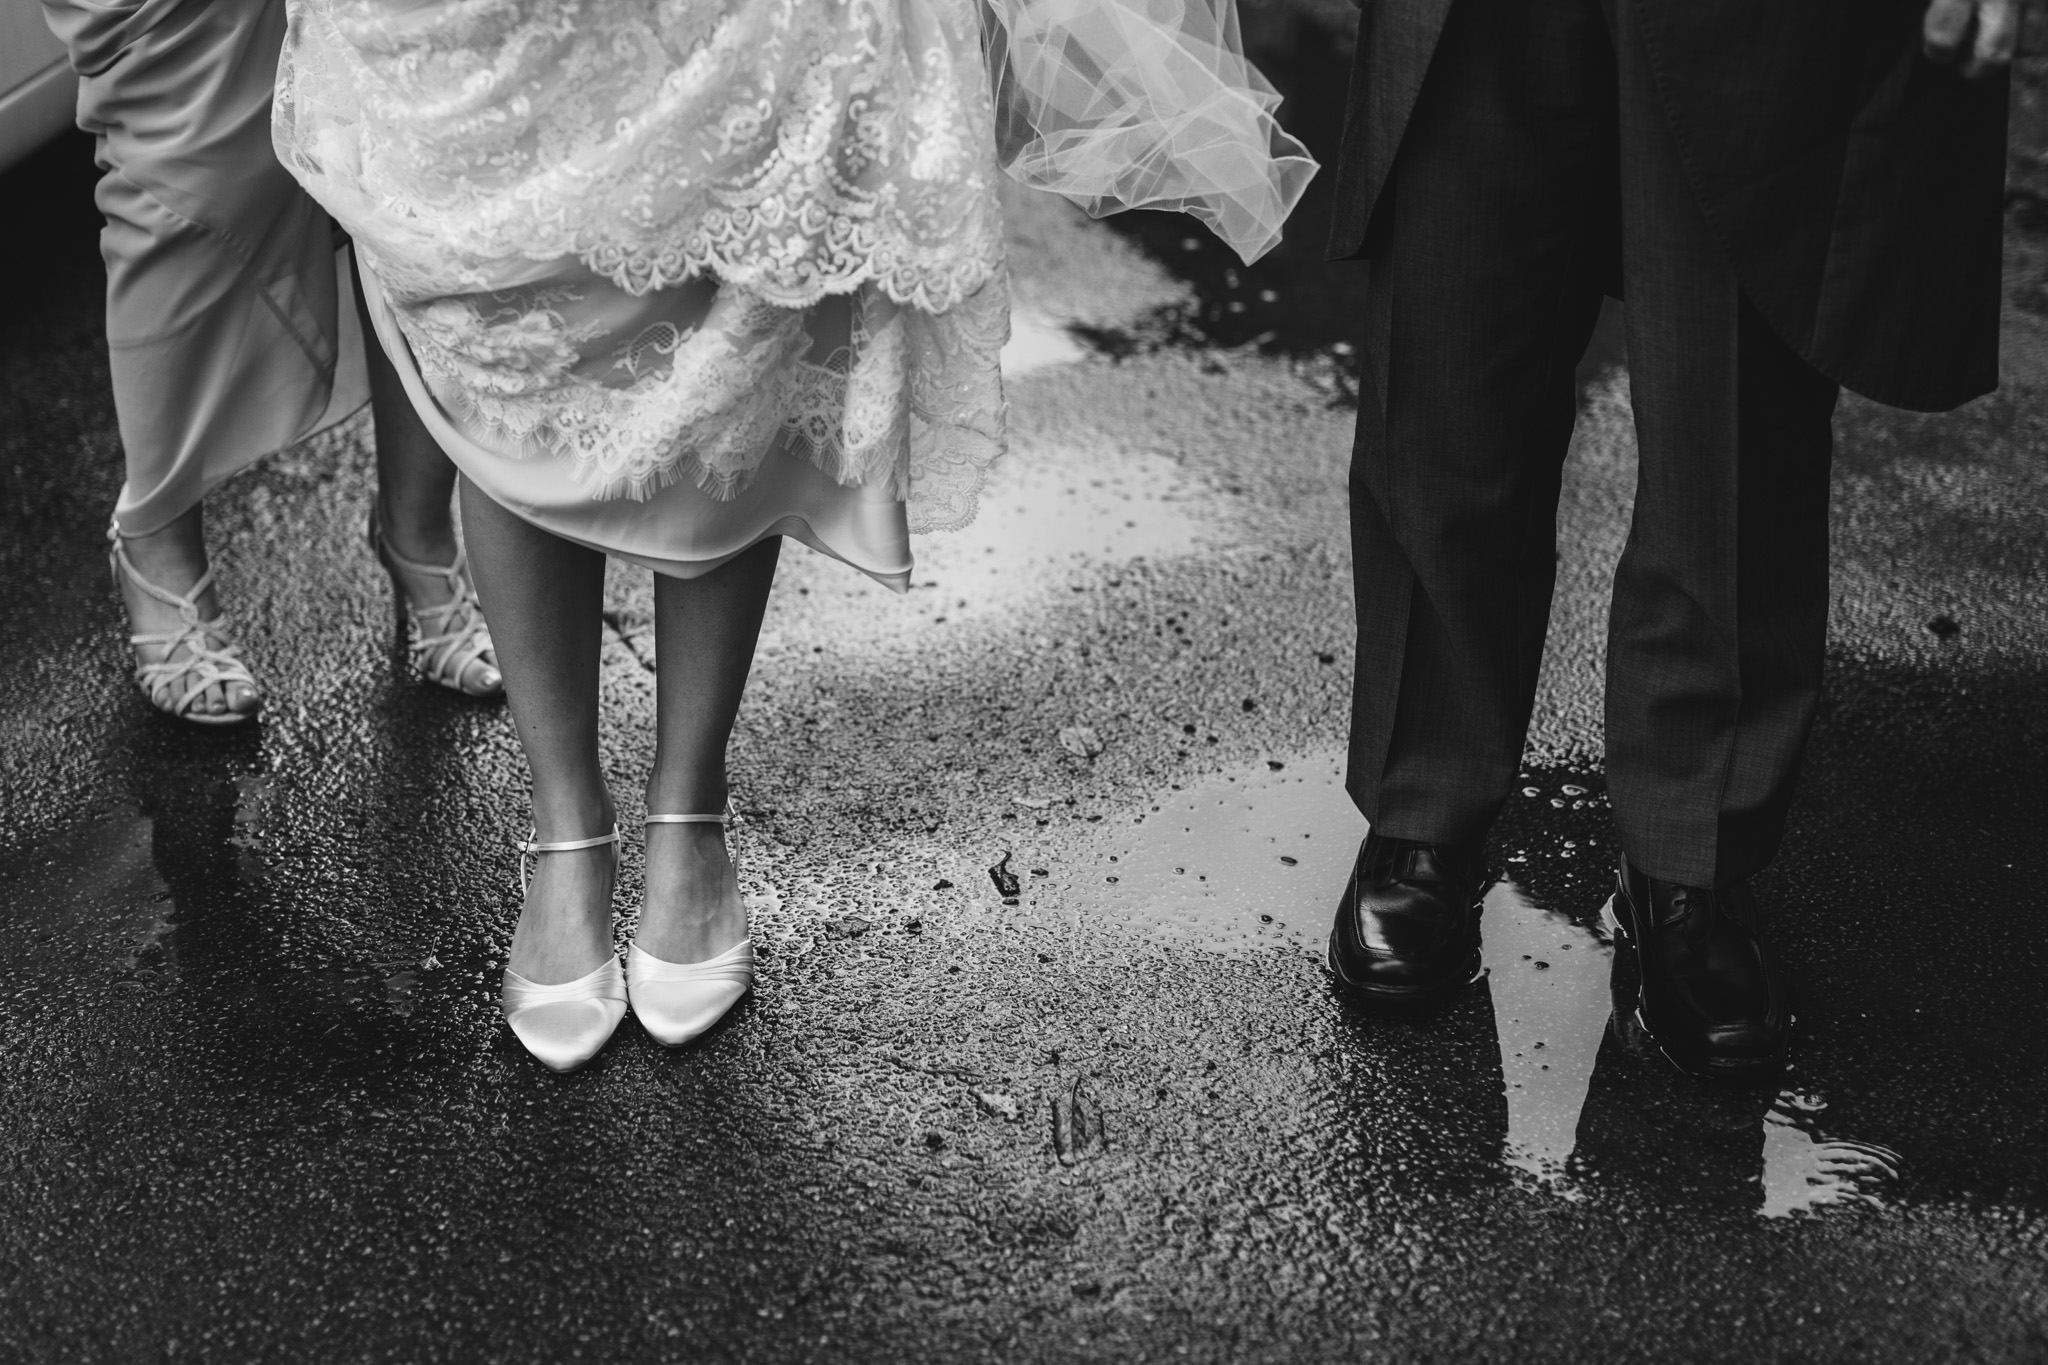 cat-lane-weddings__combermere-abbey-wedding-photography__clw__1303__C5A0419.jpg